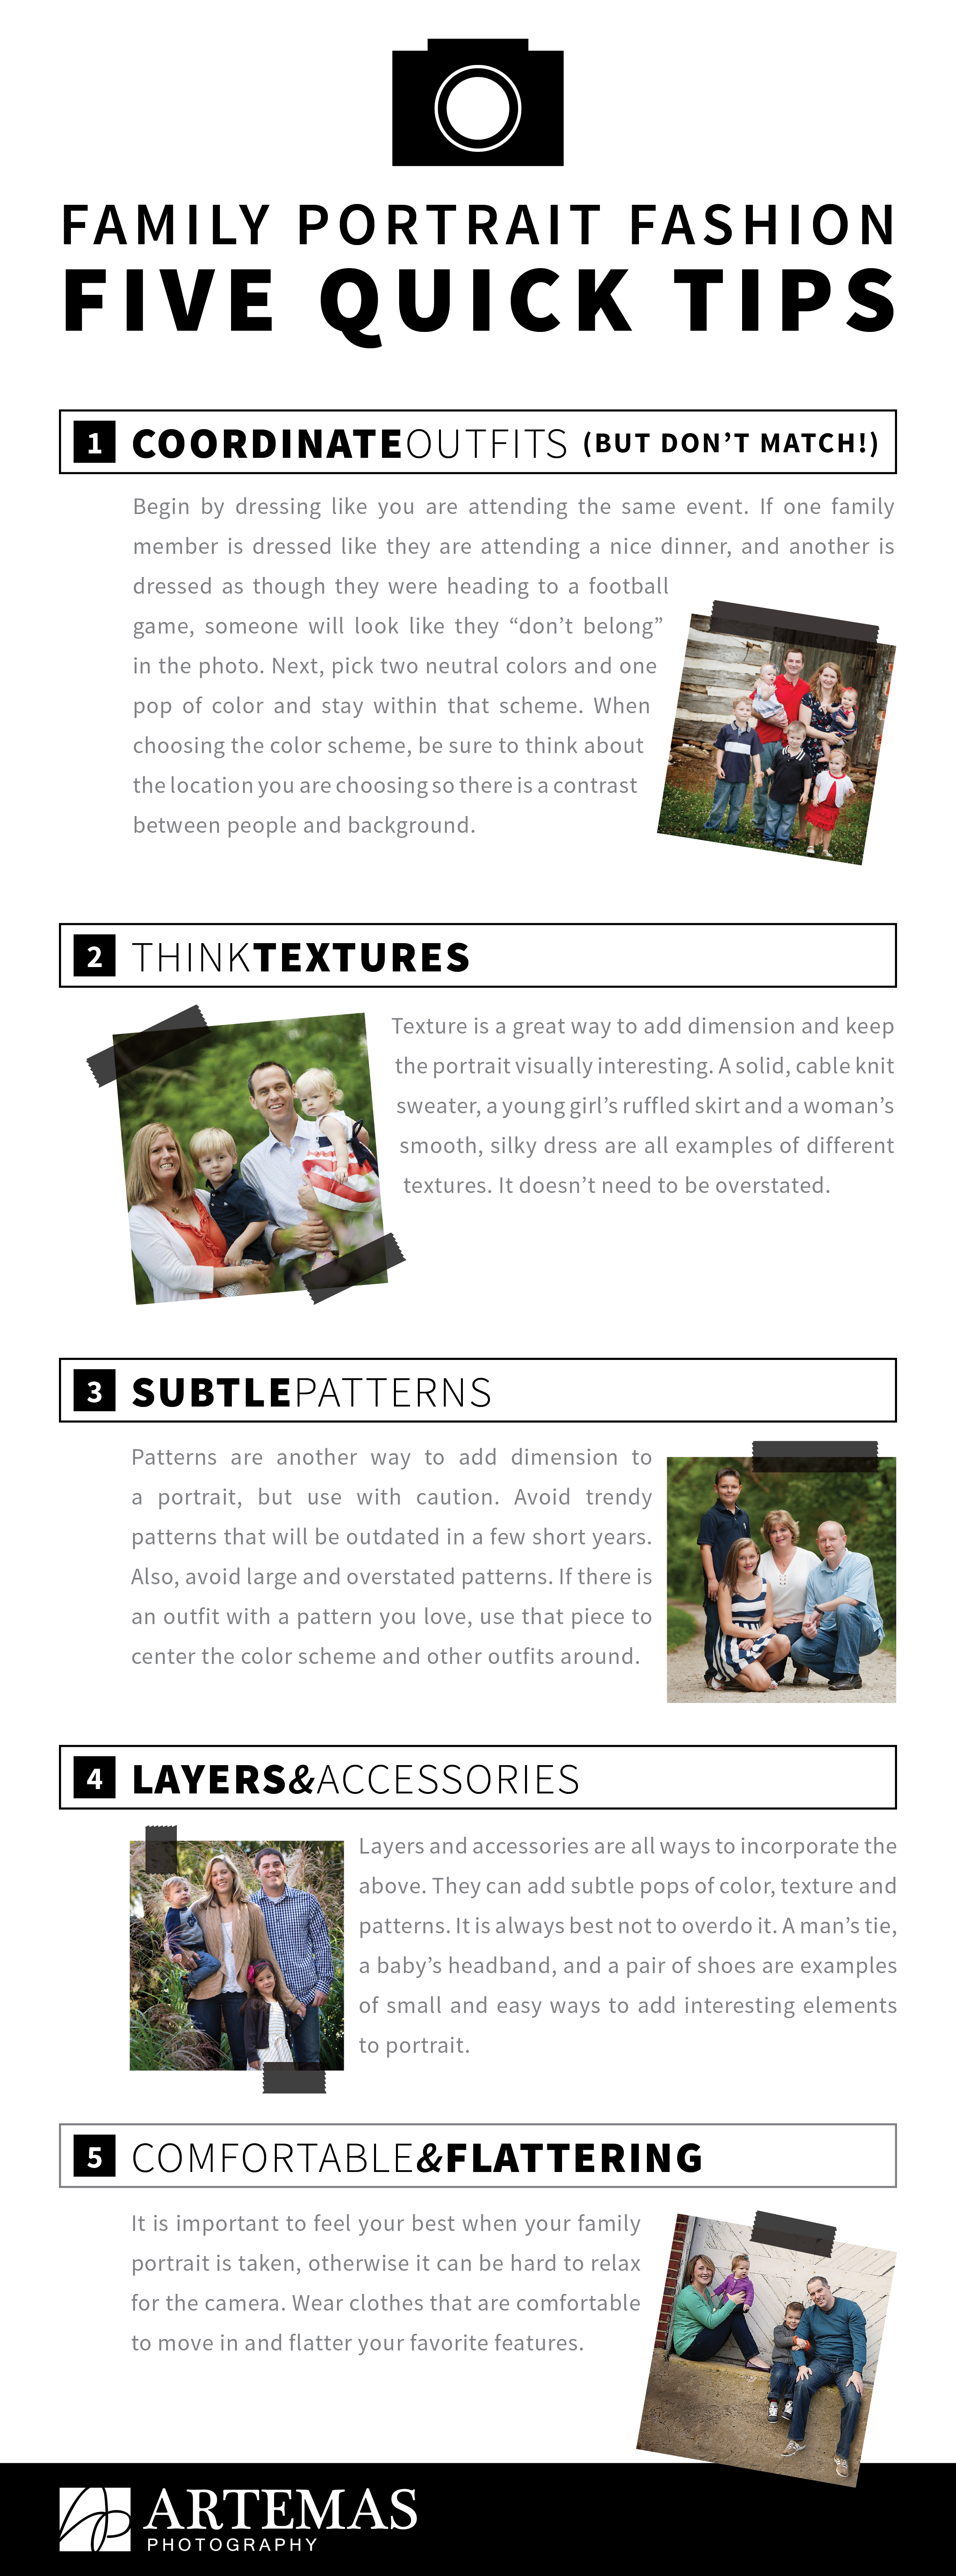 Family-Portrait-Fashion-Infographic